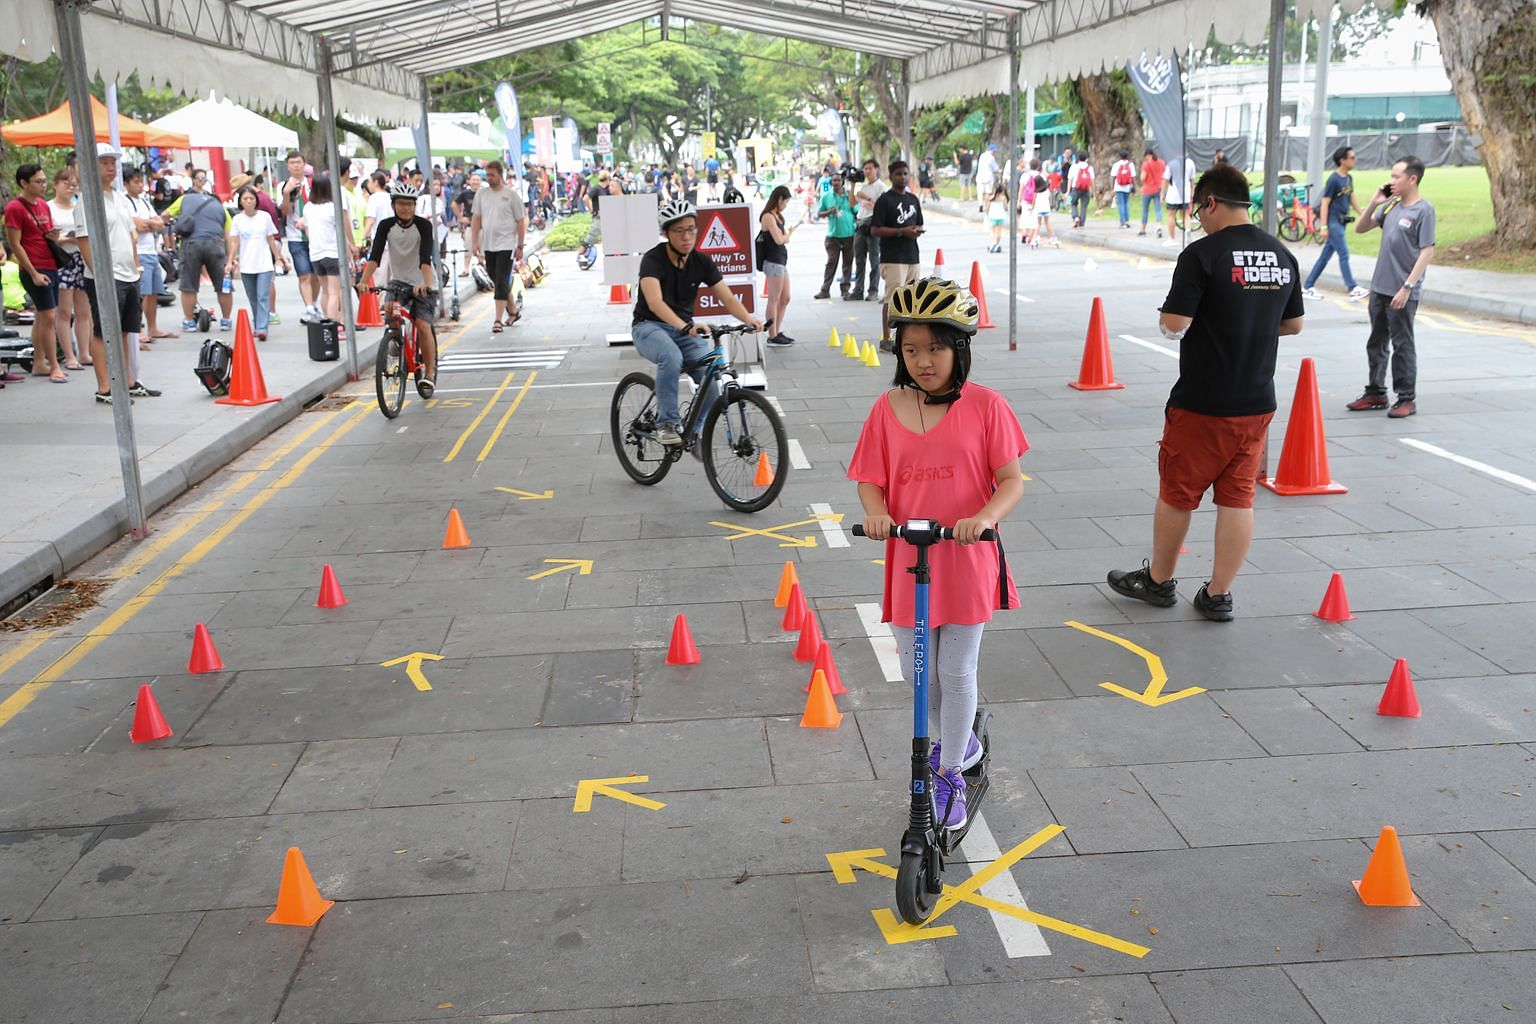 Participants had a hands-on preview of the Safe Riding Programme yesterday at a Car-Free Sunday event in the Civic District. The course, which will be free for the first year, will be rolled out at selected community centres, schools and migrant work